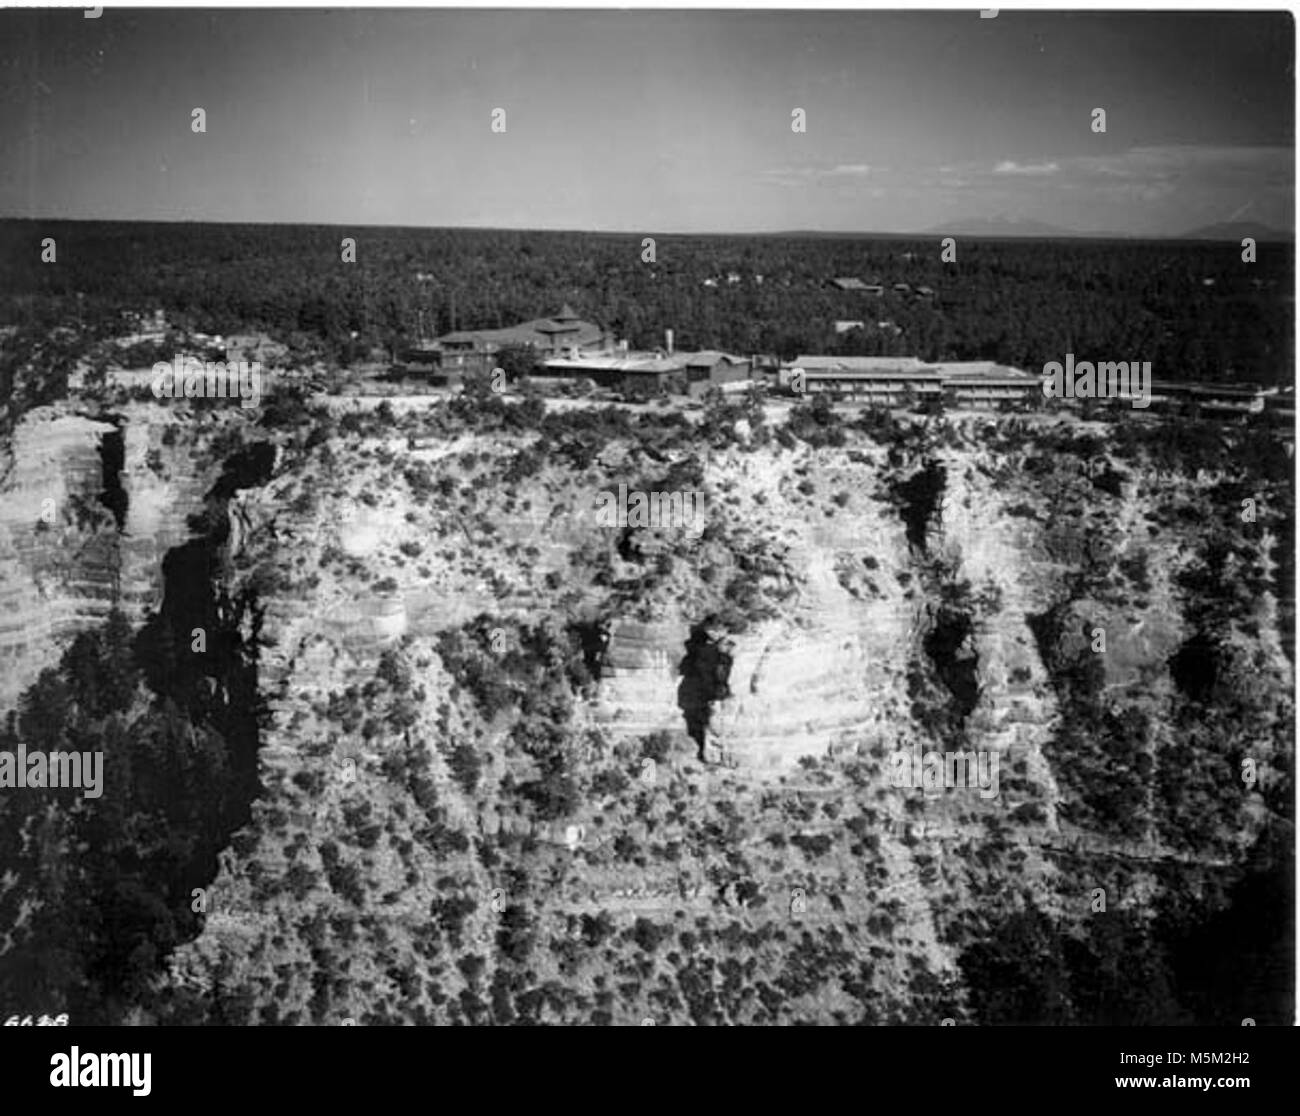 Grand Canyon Historic Hopi House Aerial  . Aerial view, includes el tovar, hopi house, verkamps.  On kaibab limestone - Stock Image